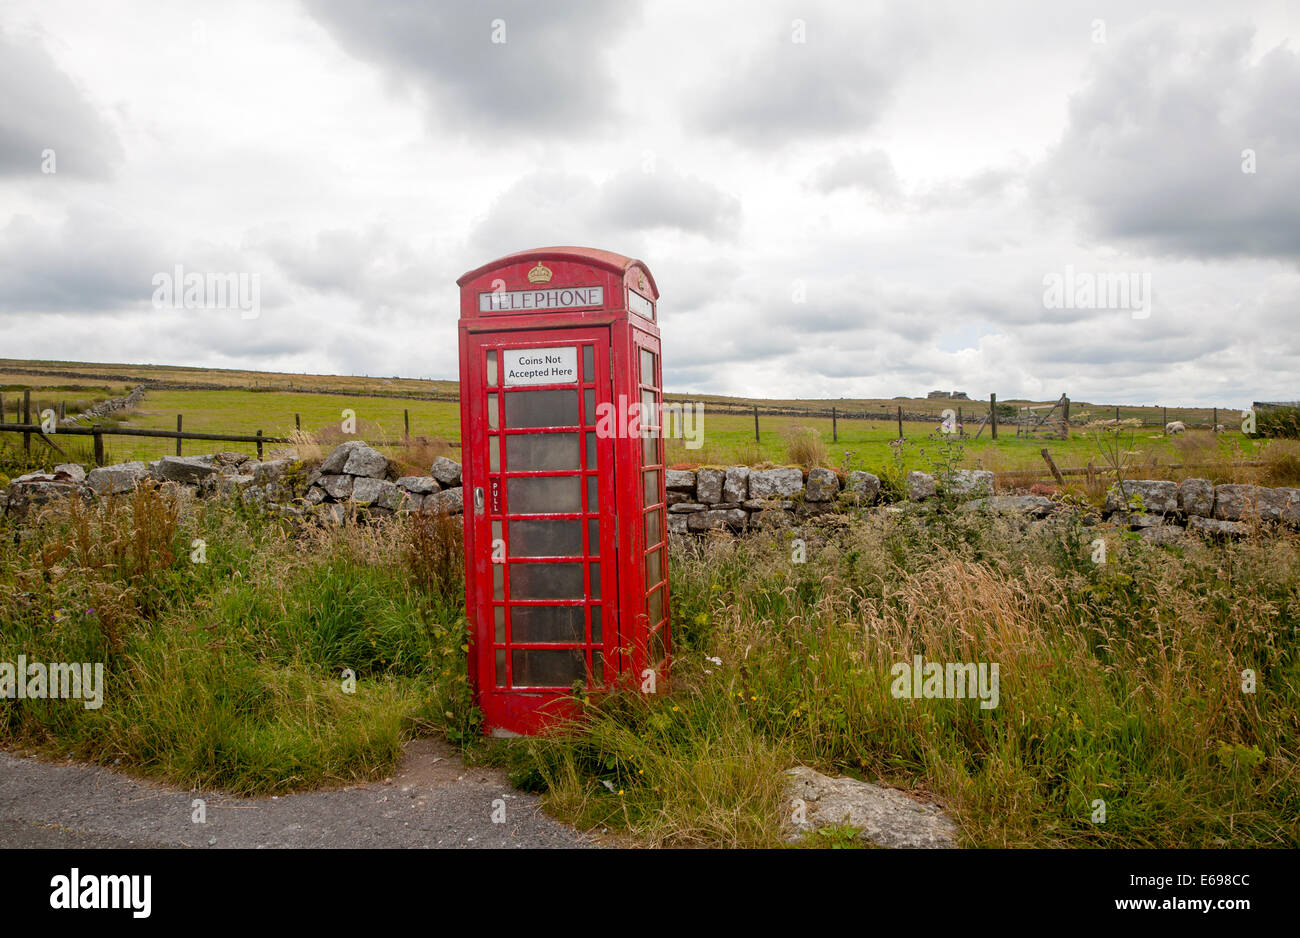 Red telephone box booth on moorland near Princetown, Dartmoor national park, Devon, England - Stock Image